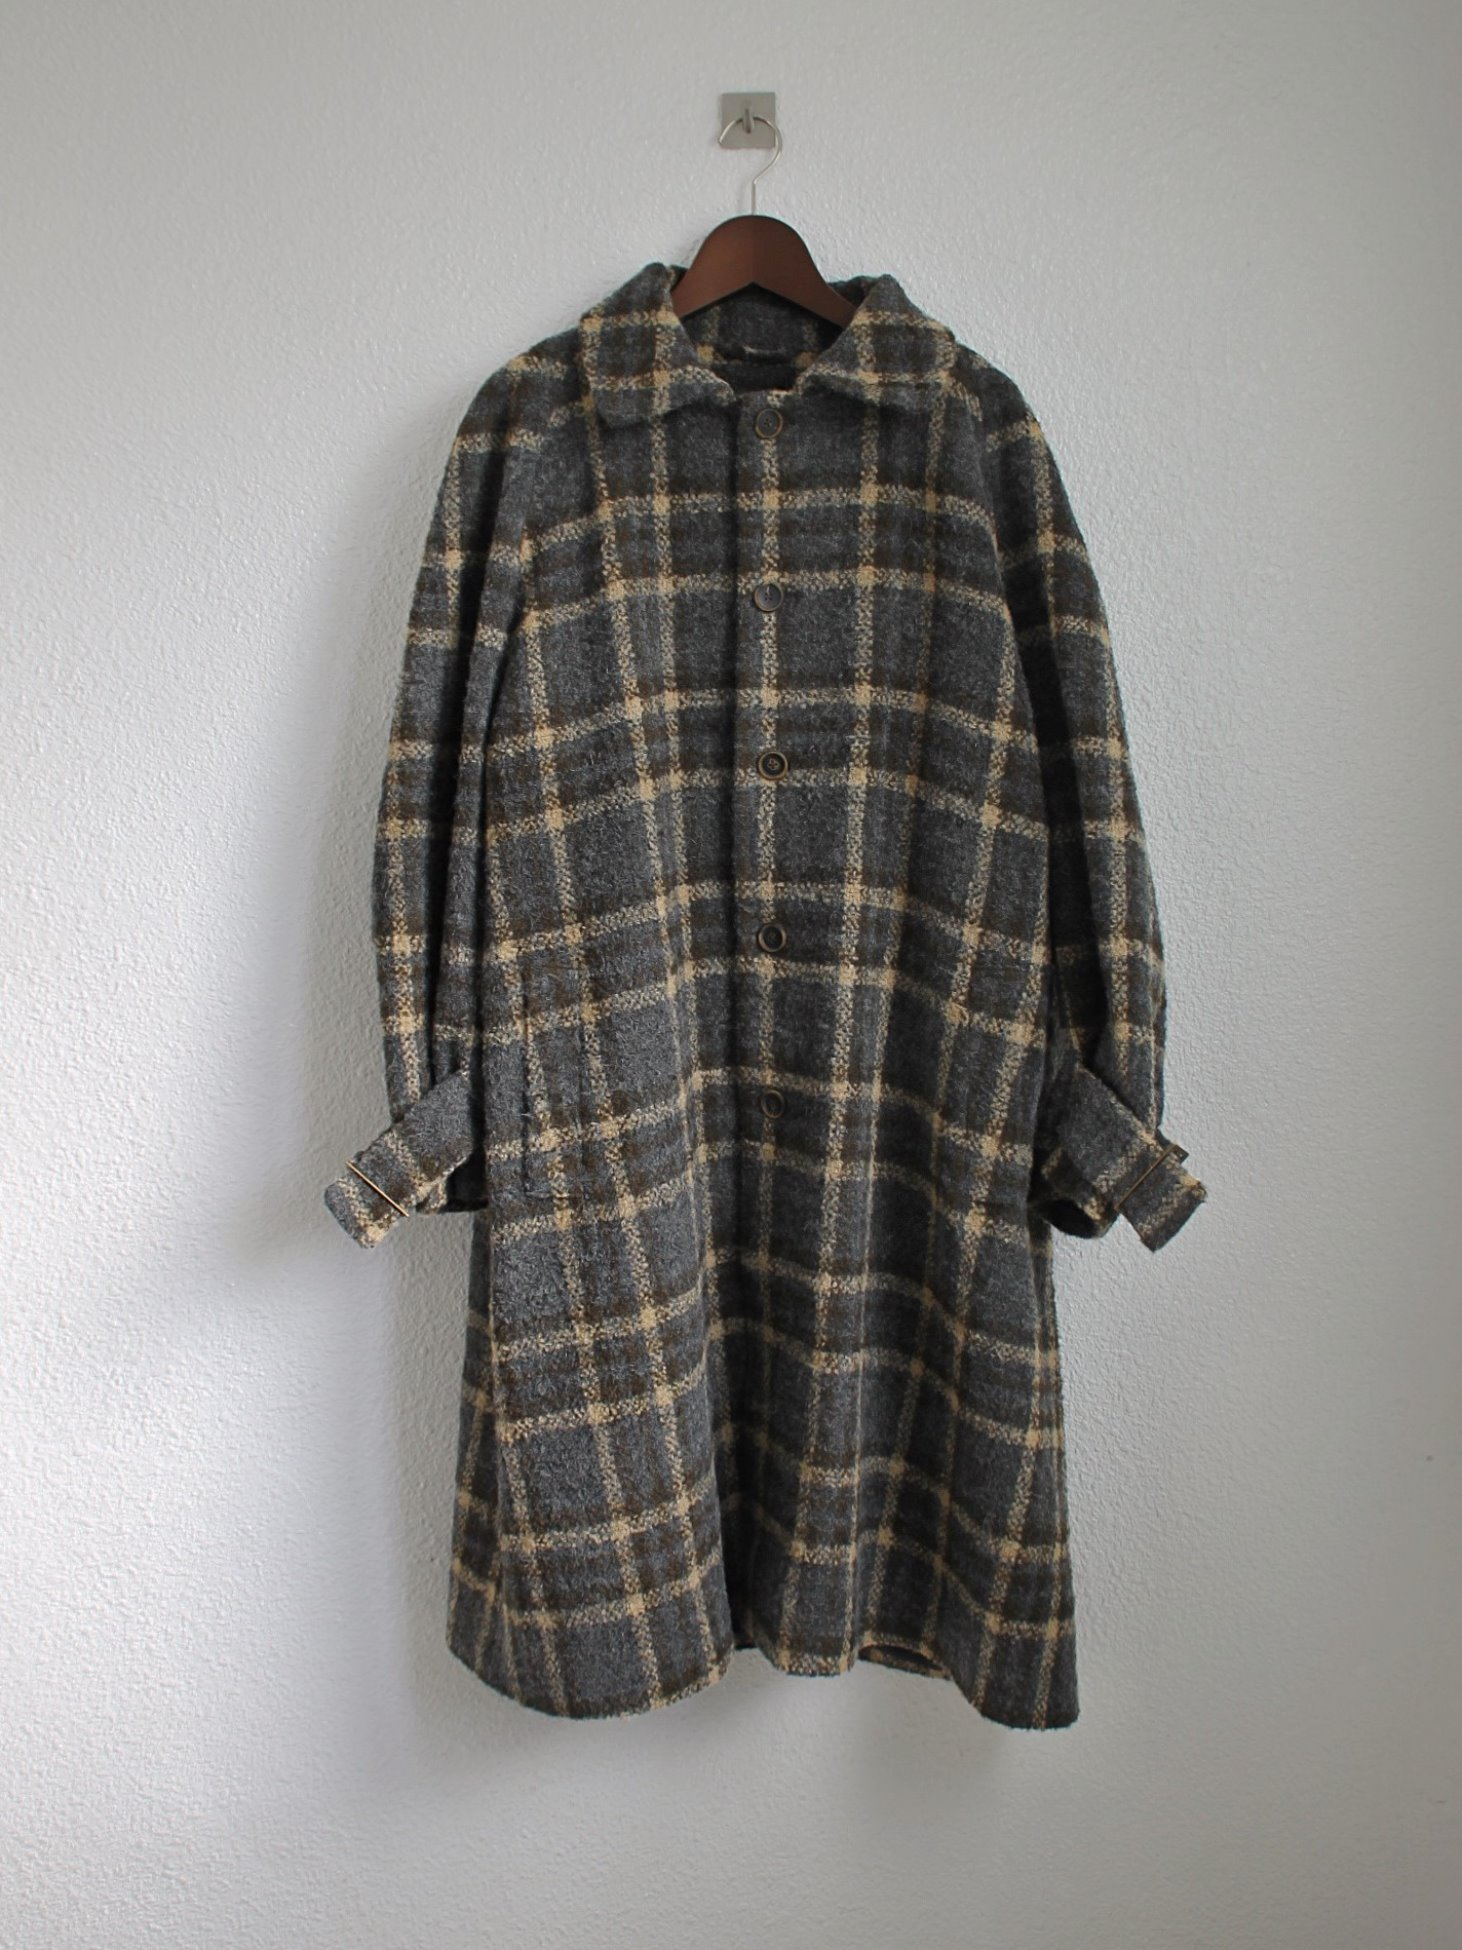 [An Irrational Element] Karl Coat - Plaid